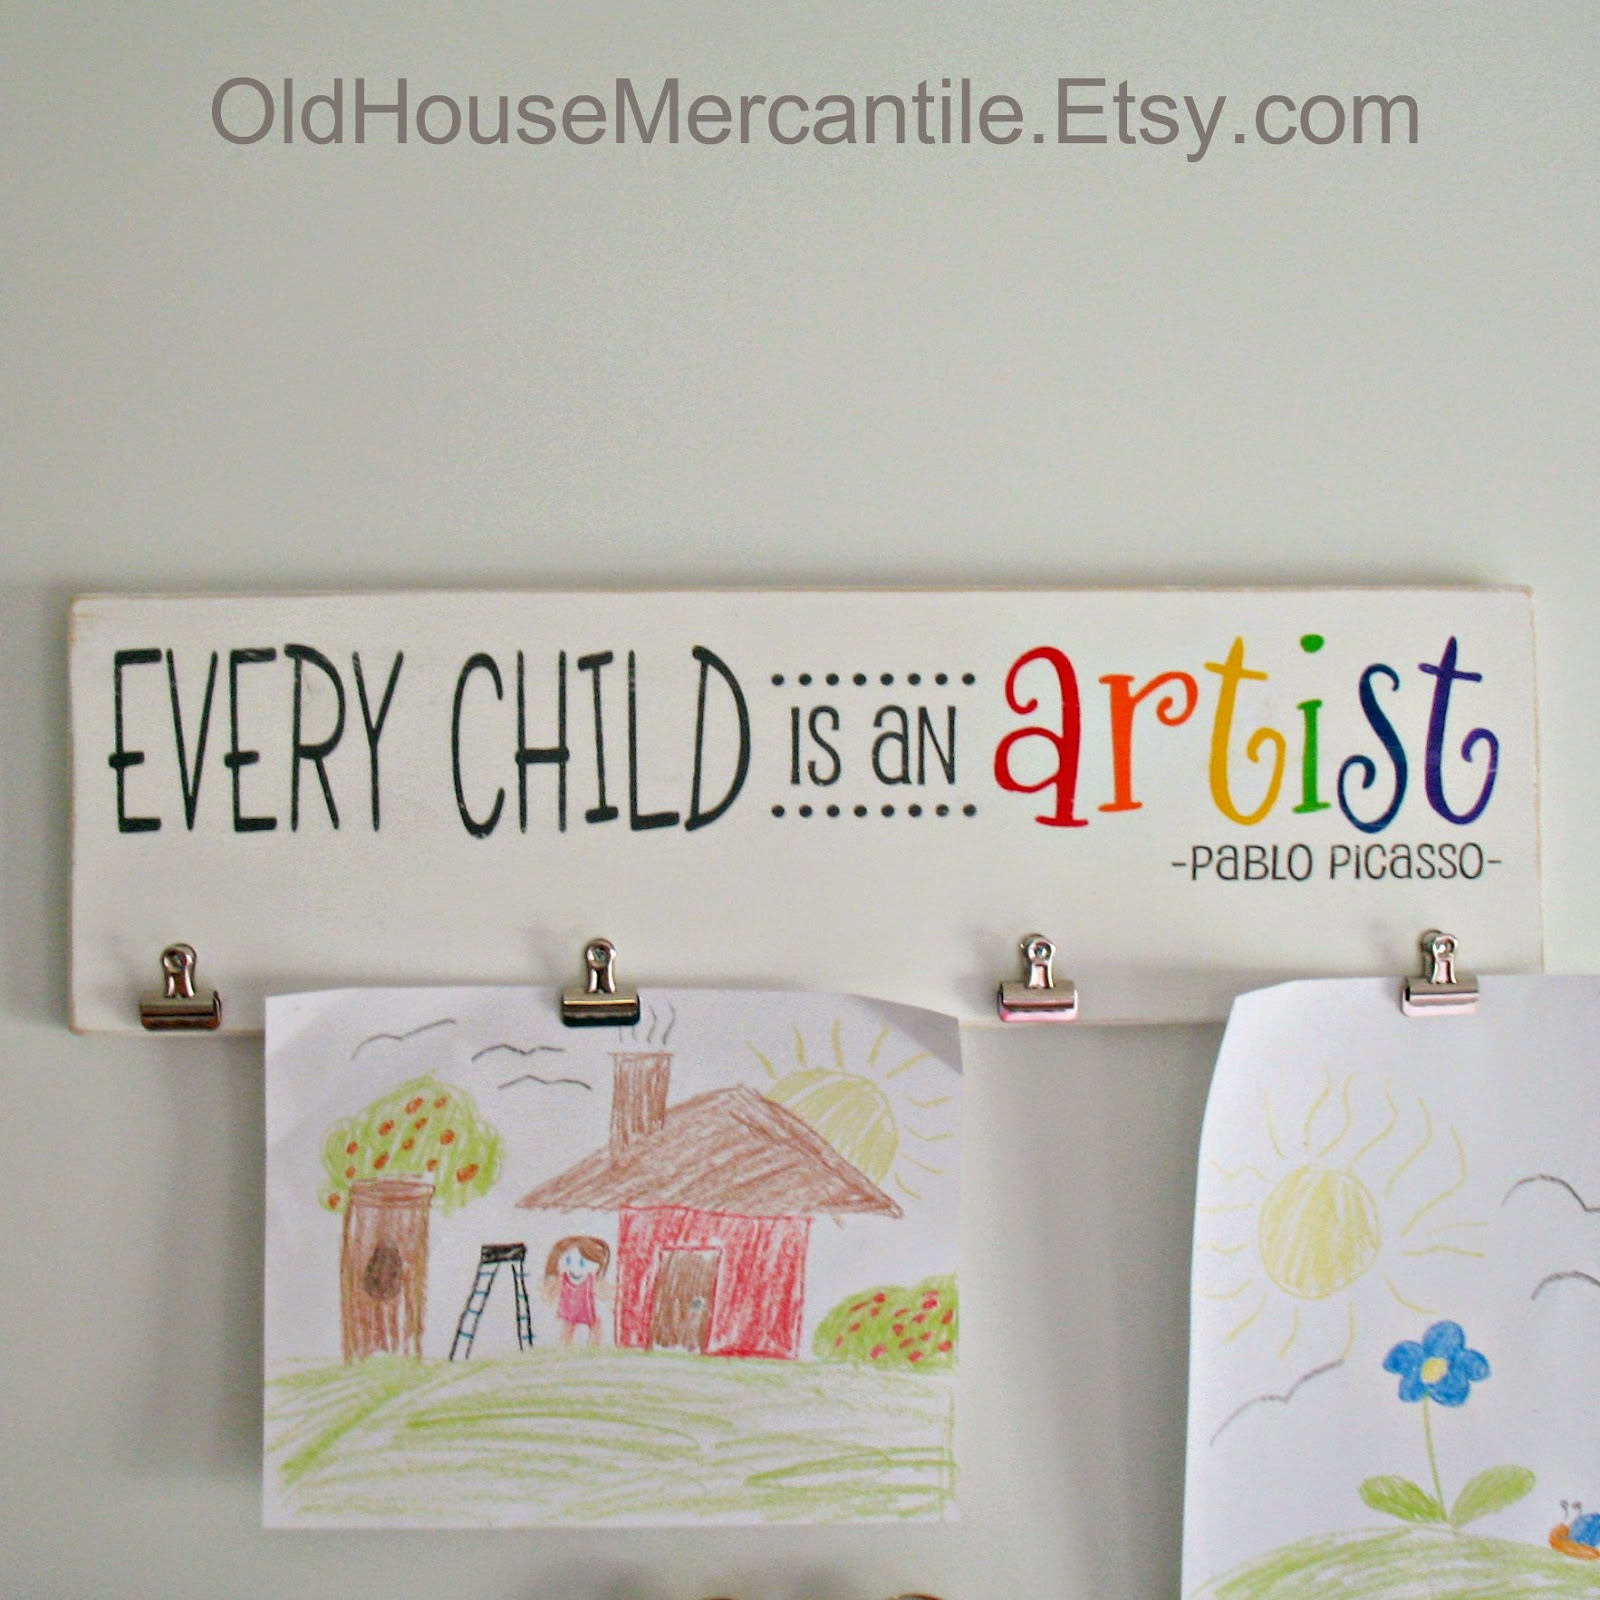 https://www.etsy.com/listing/230965329/every-child-is-an-artist-with-clips